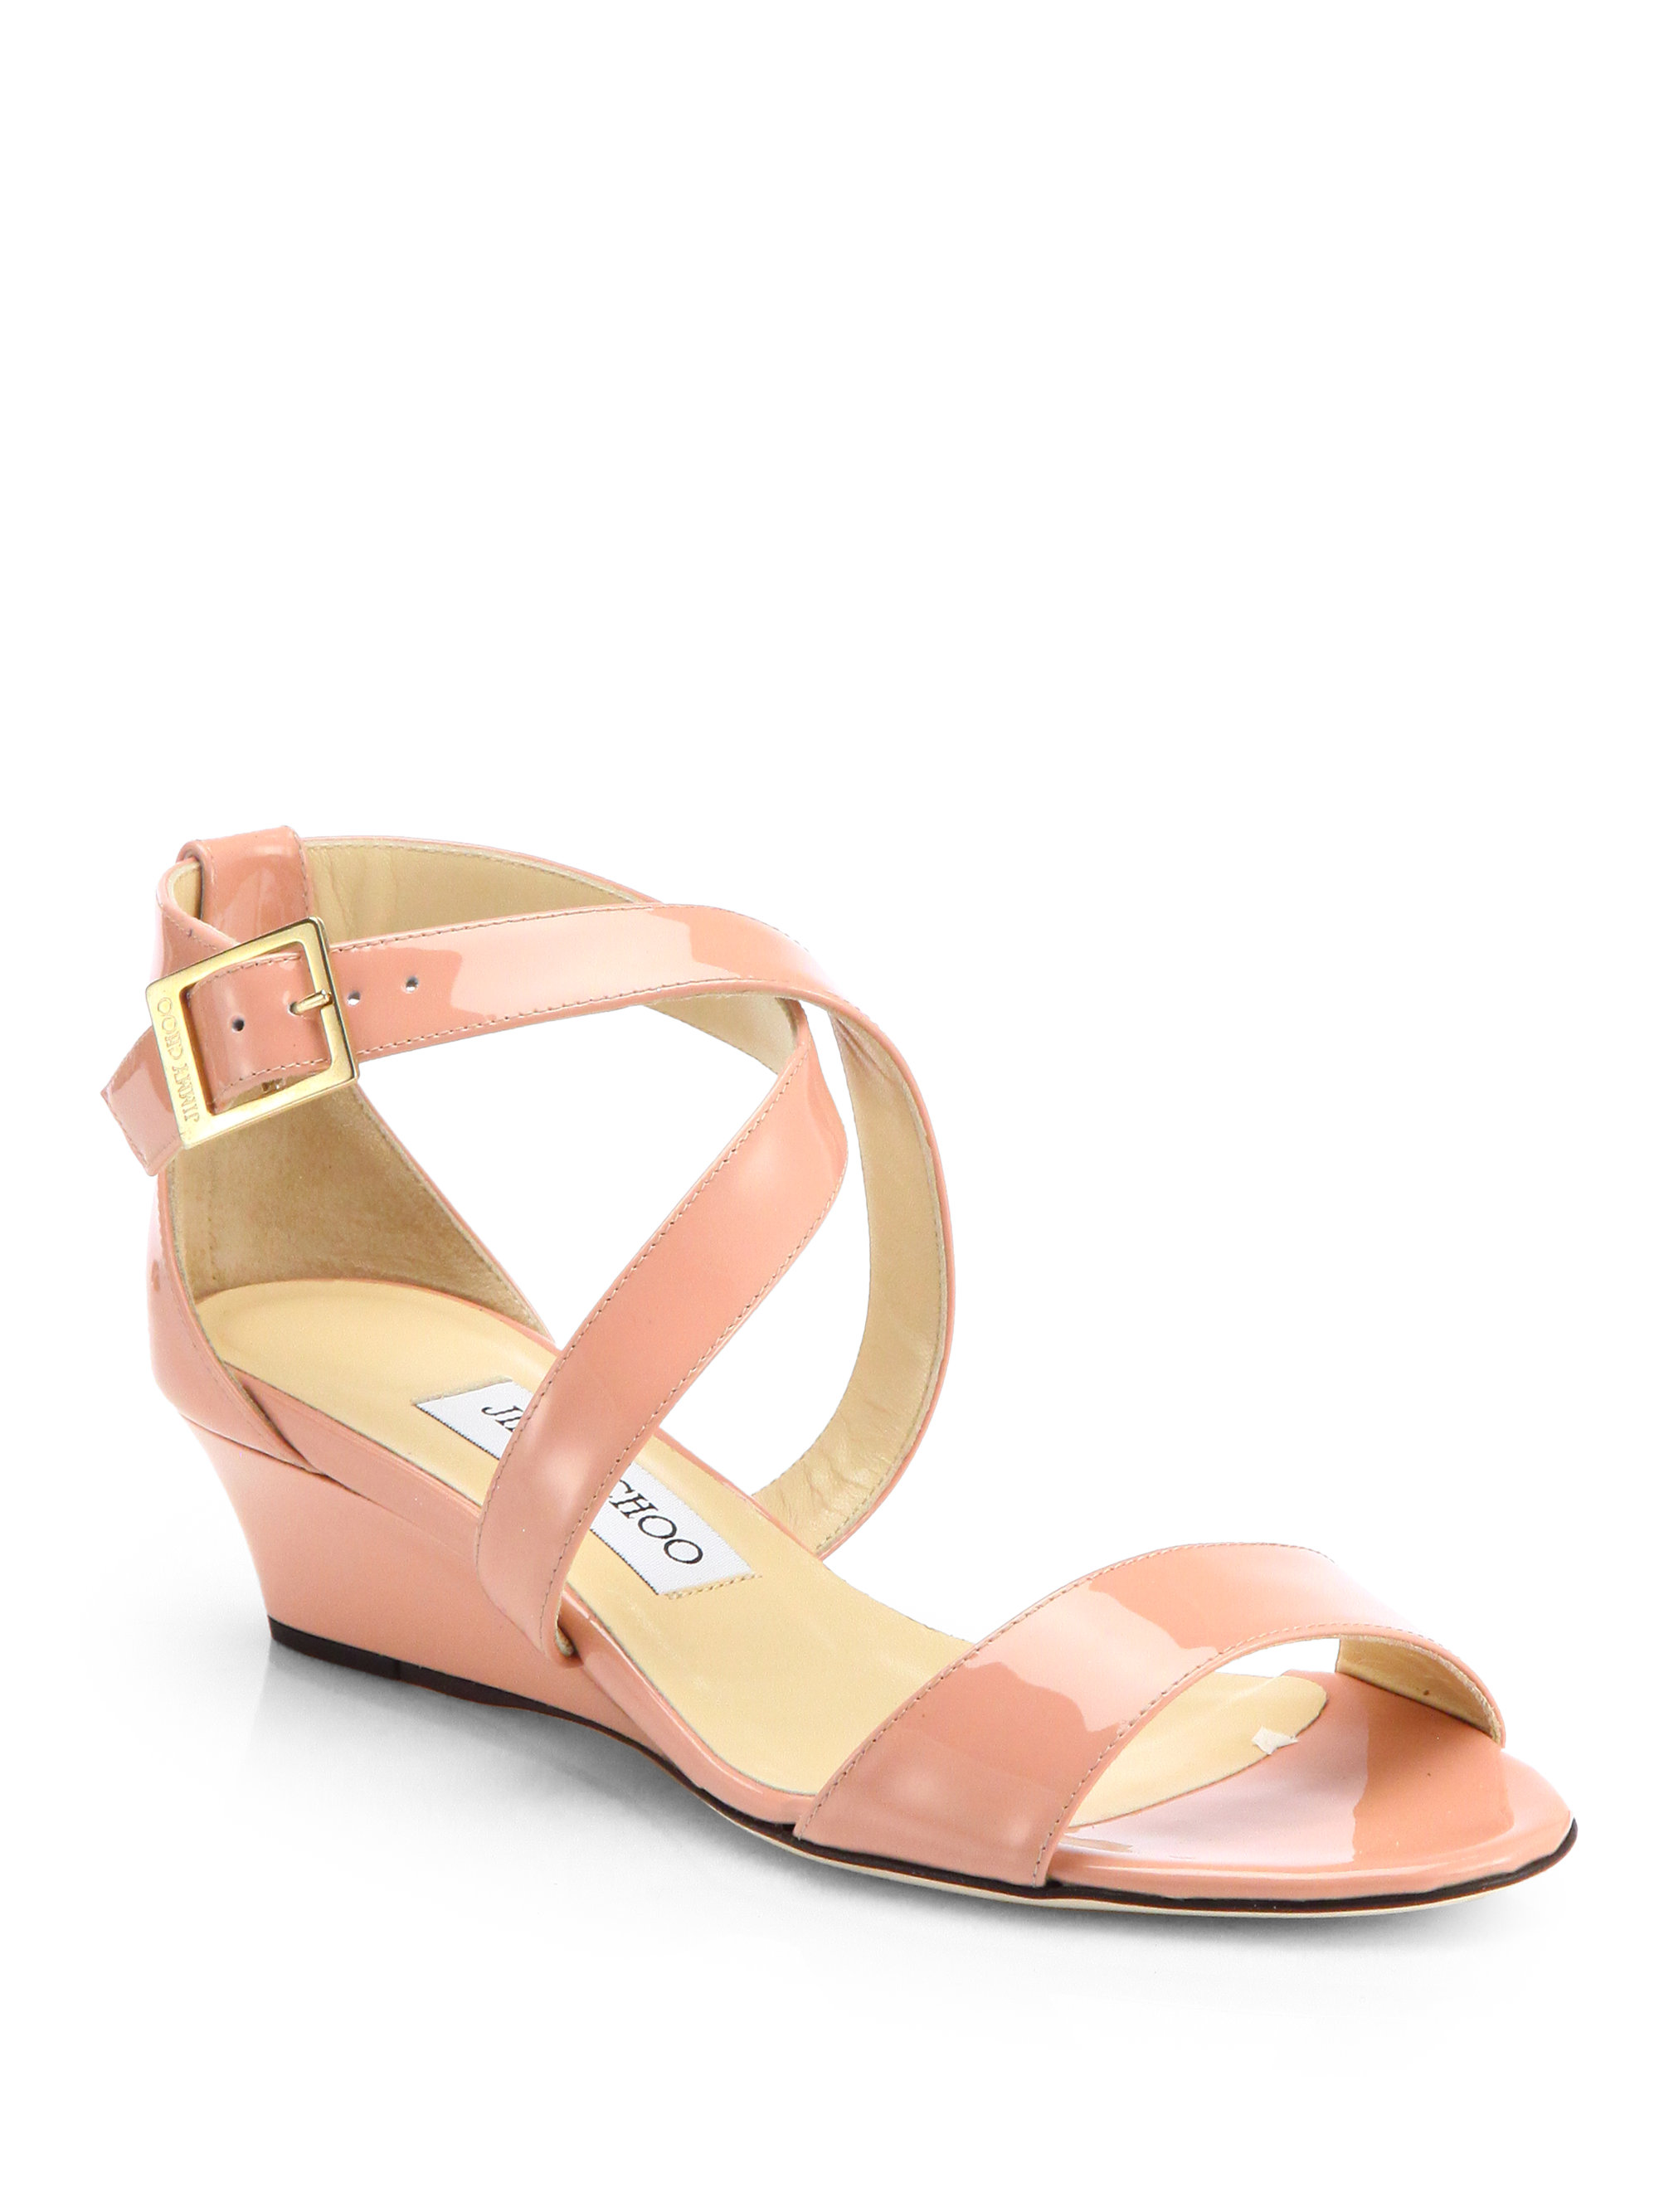 57469092666 Lyst - Jimmy Choo Chiara Patent Leather Wedge Sandals in Pink